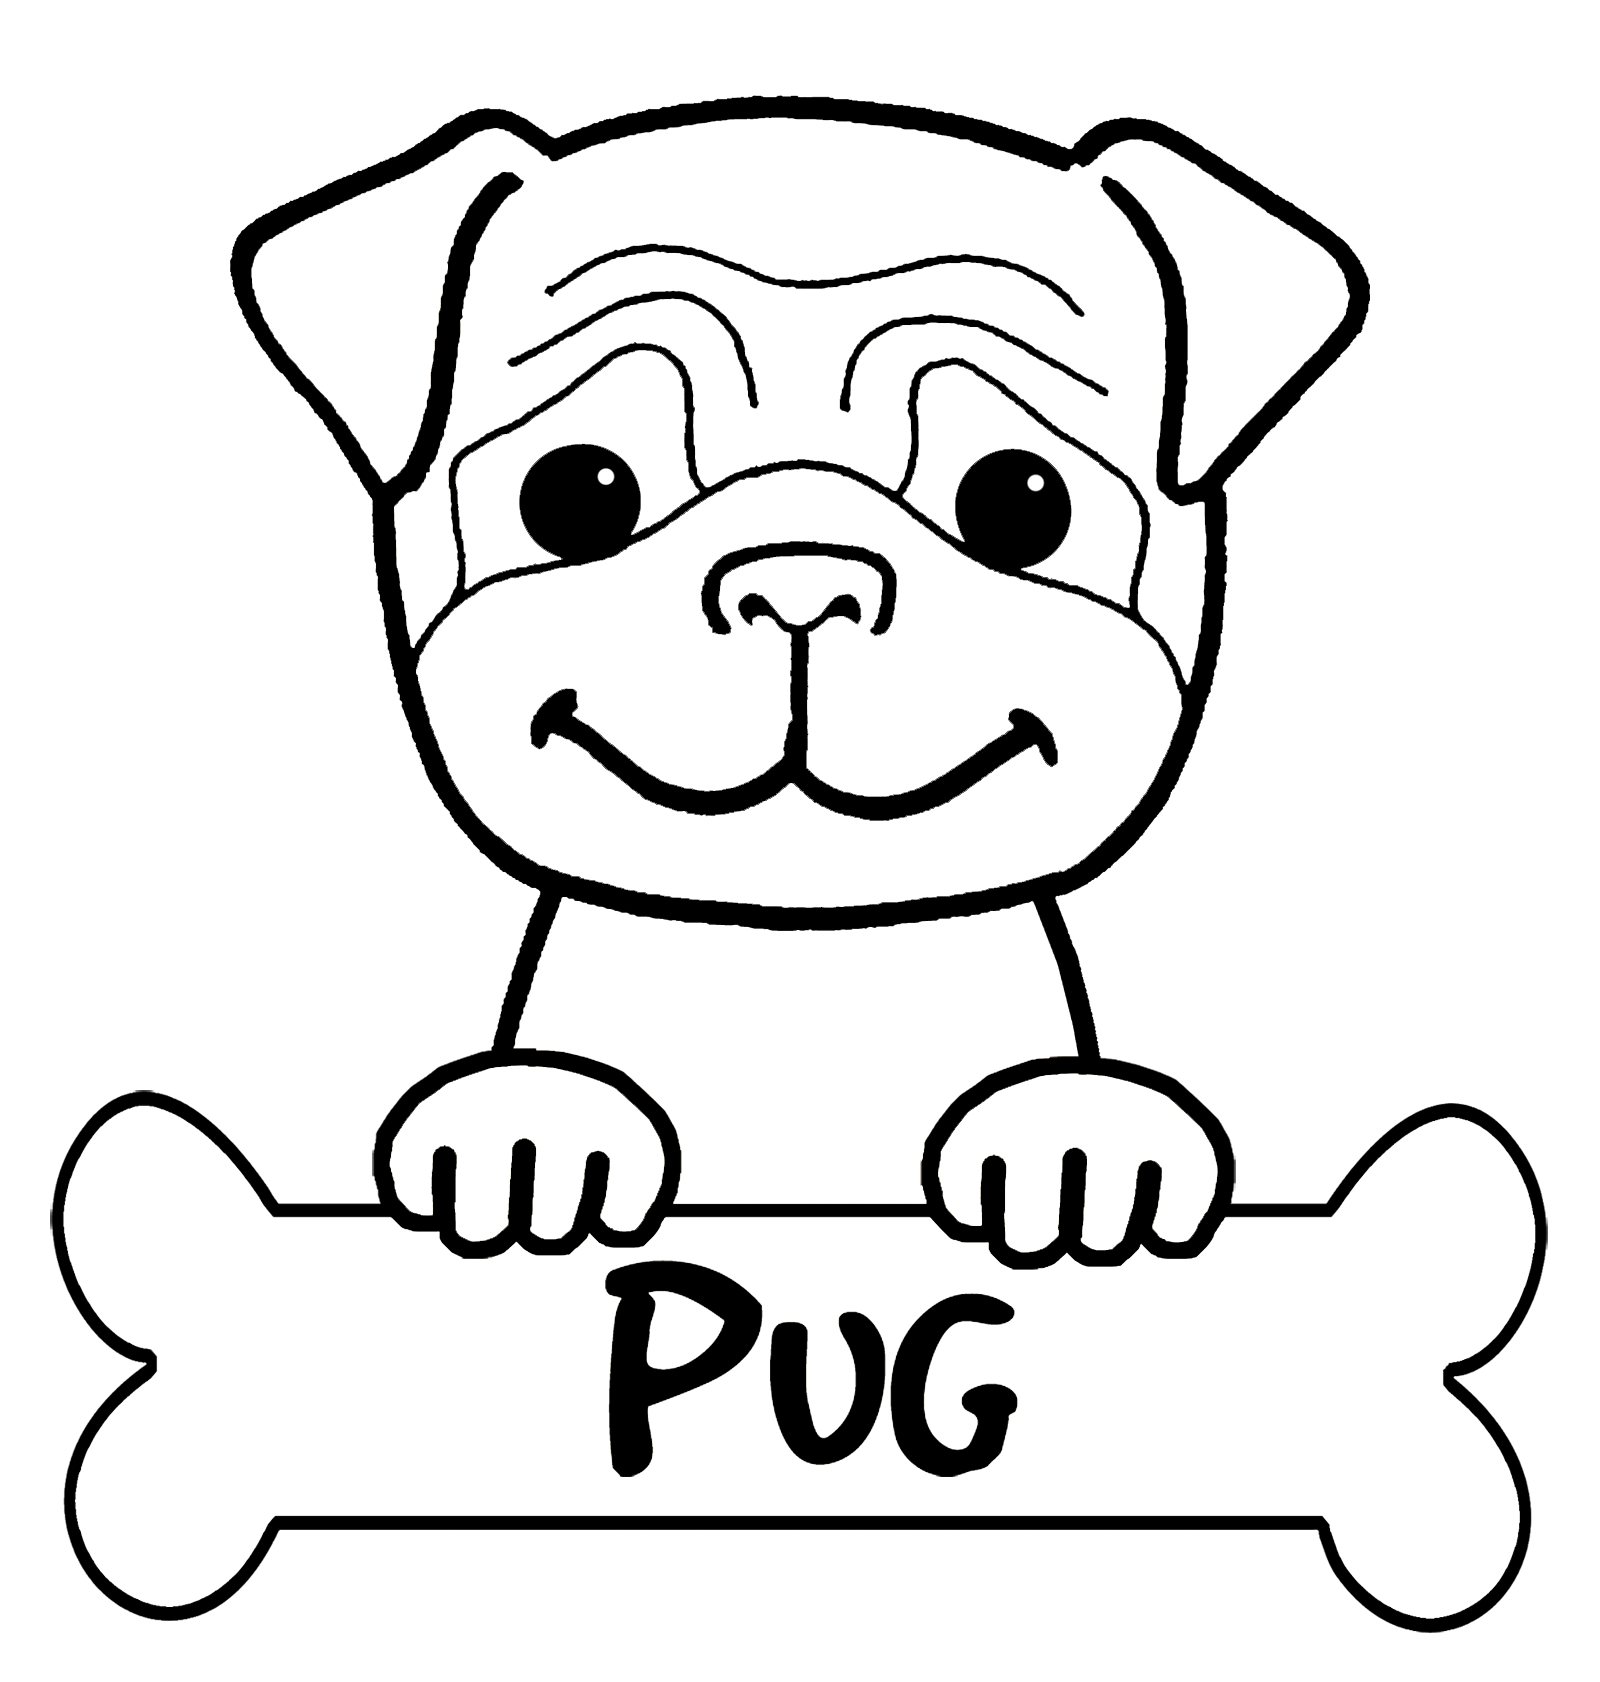 coloring dog for kids cute dog coloring pages to download and print for free for kids coloring dog